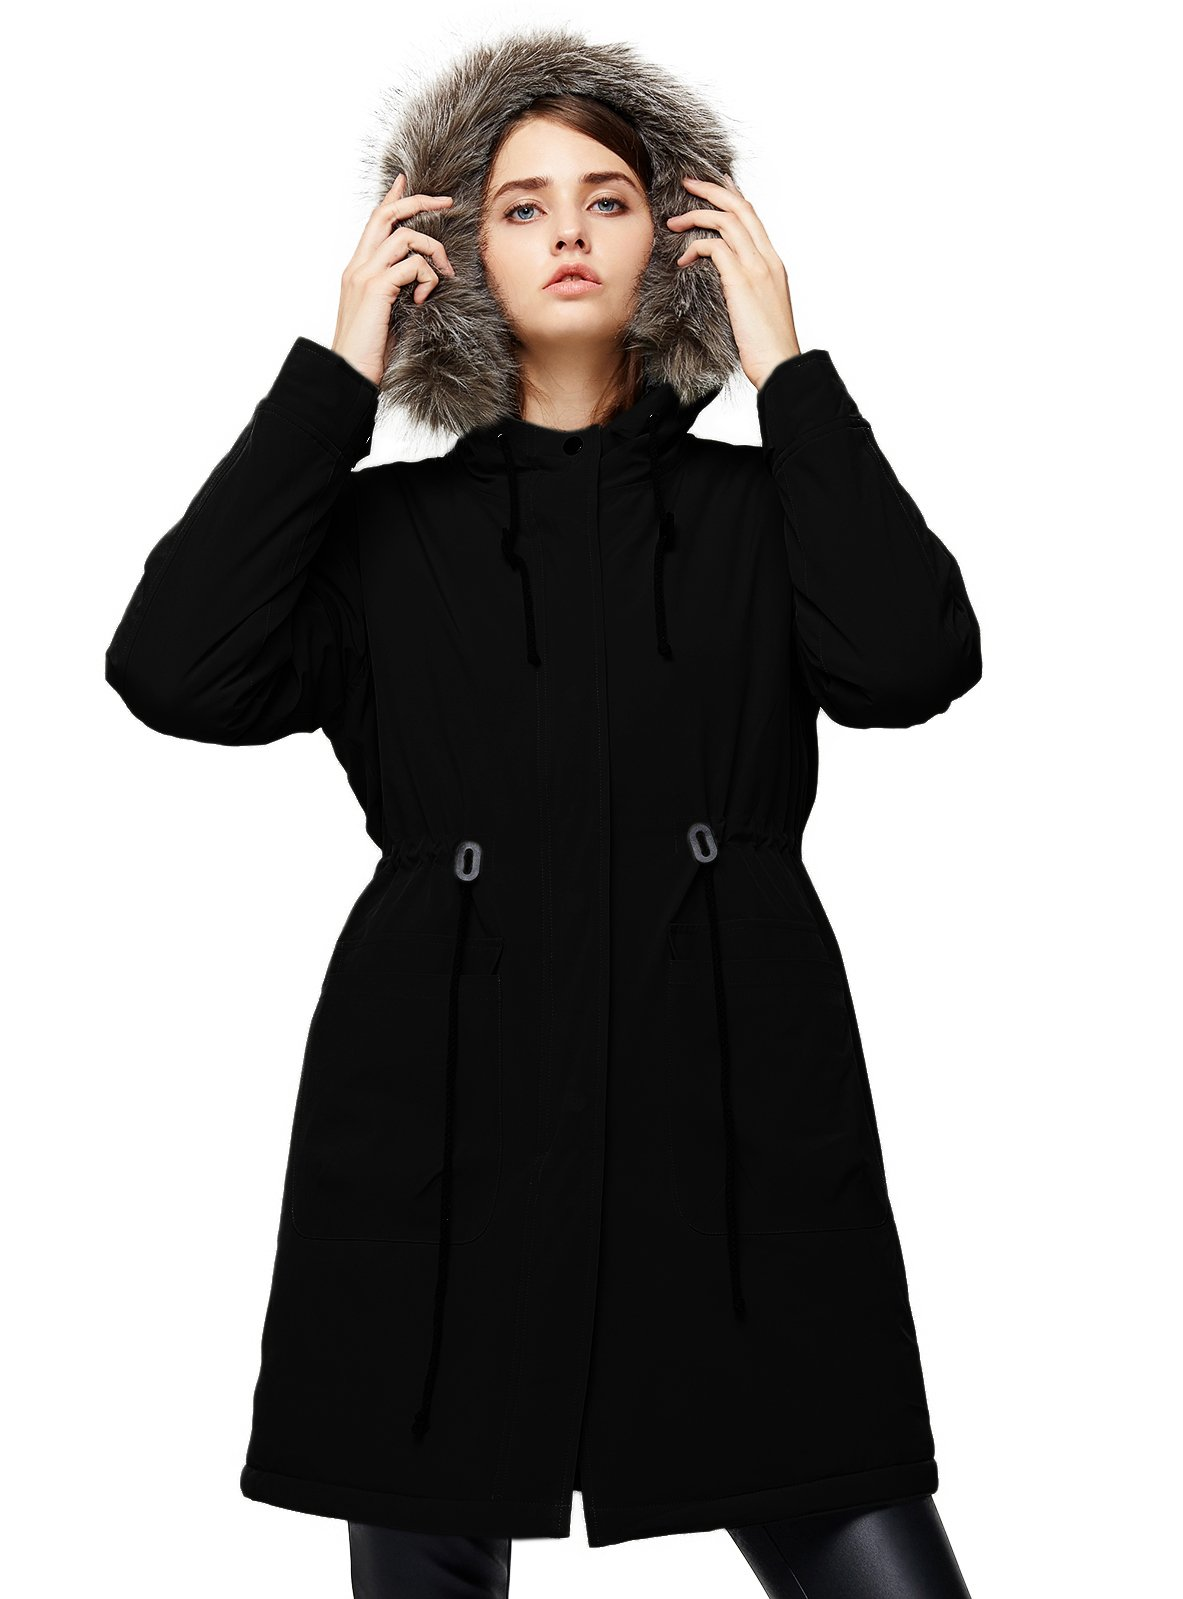 Escalier Women`s Winter Parka Coat Faux Fur Hooded Jacket Fleece Lined Parkas Black 3XL